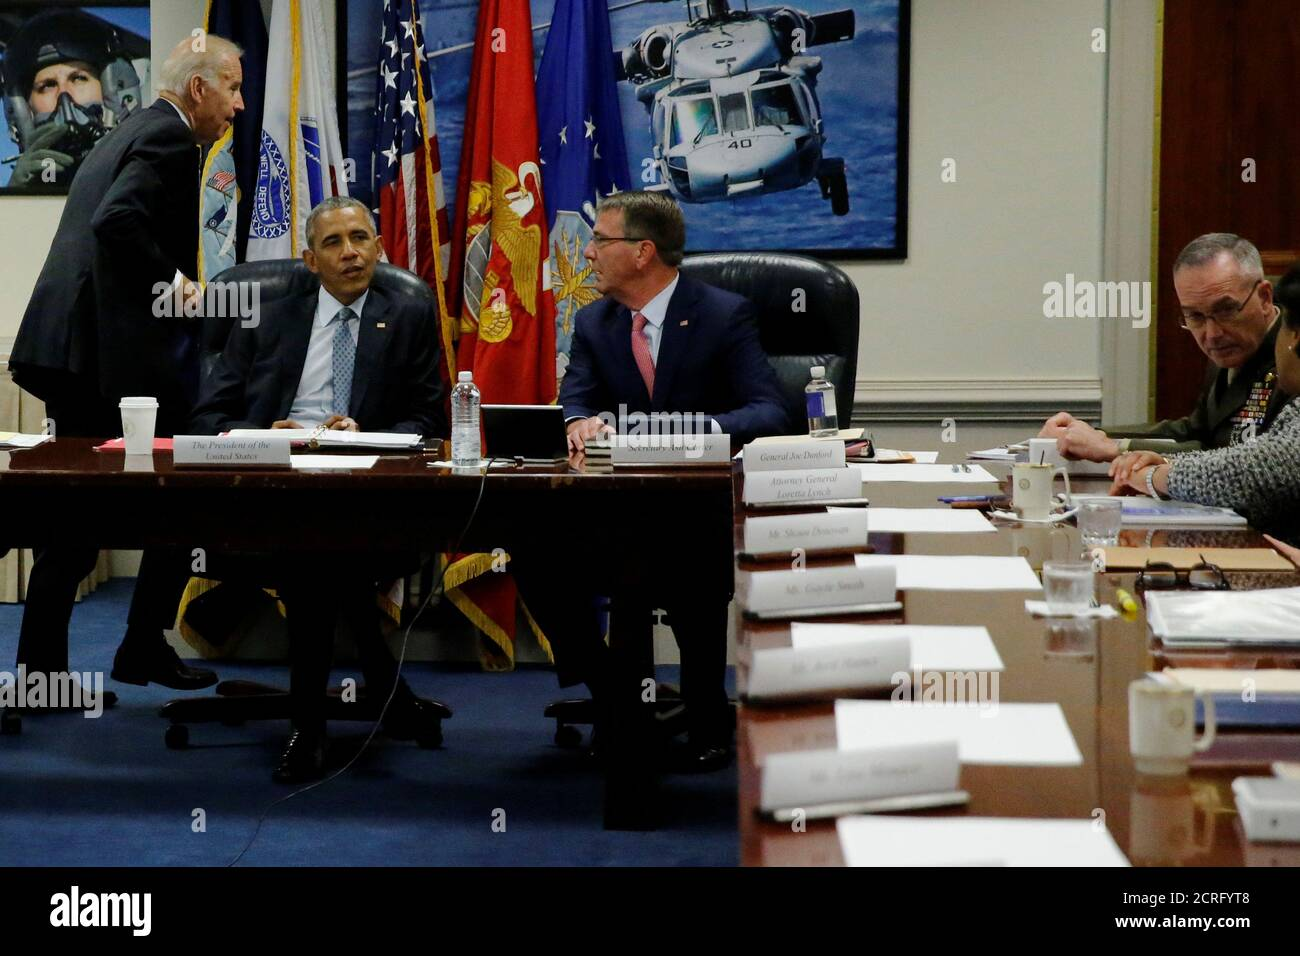 U.S. Vice President Joe Biden, President Barack Obama, Defense Secretary Ash Carter and Chairman of the Joint Chiefs of Staff U.S. Marine Corps General Joseph Dunford arrive for a meeting of the National Security Council at the Pentagon in Arlington, Virginia, U.S. August 4, 2016.  REUTERS/Jonathan Ernst Stock Photo